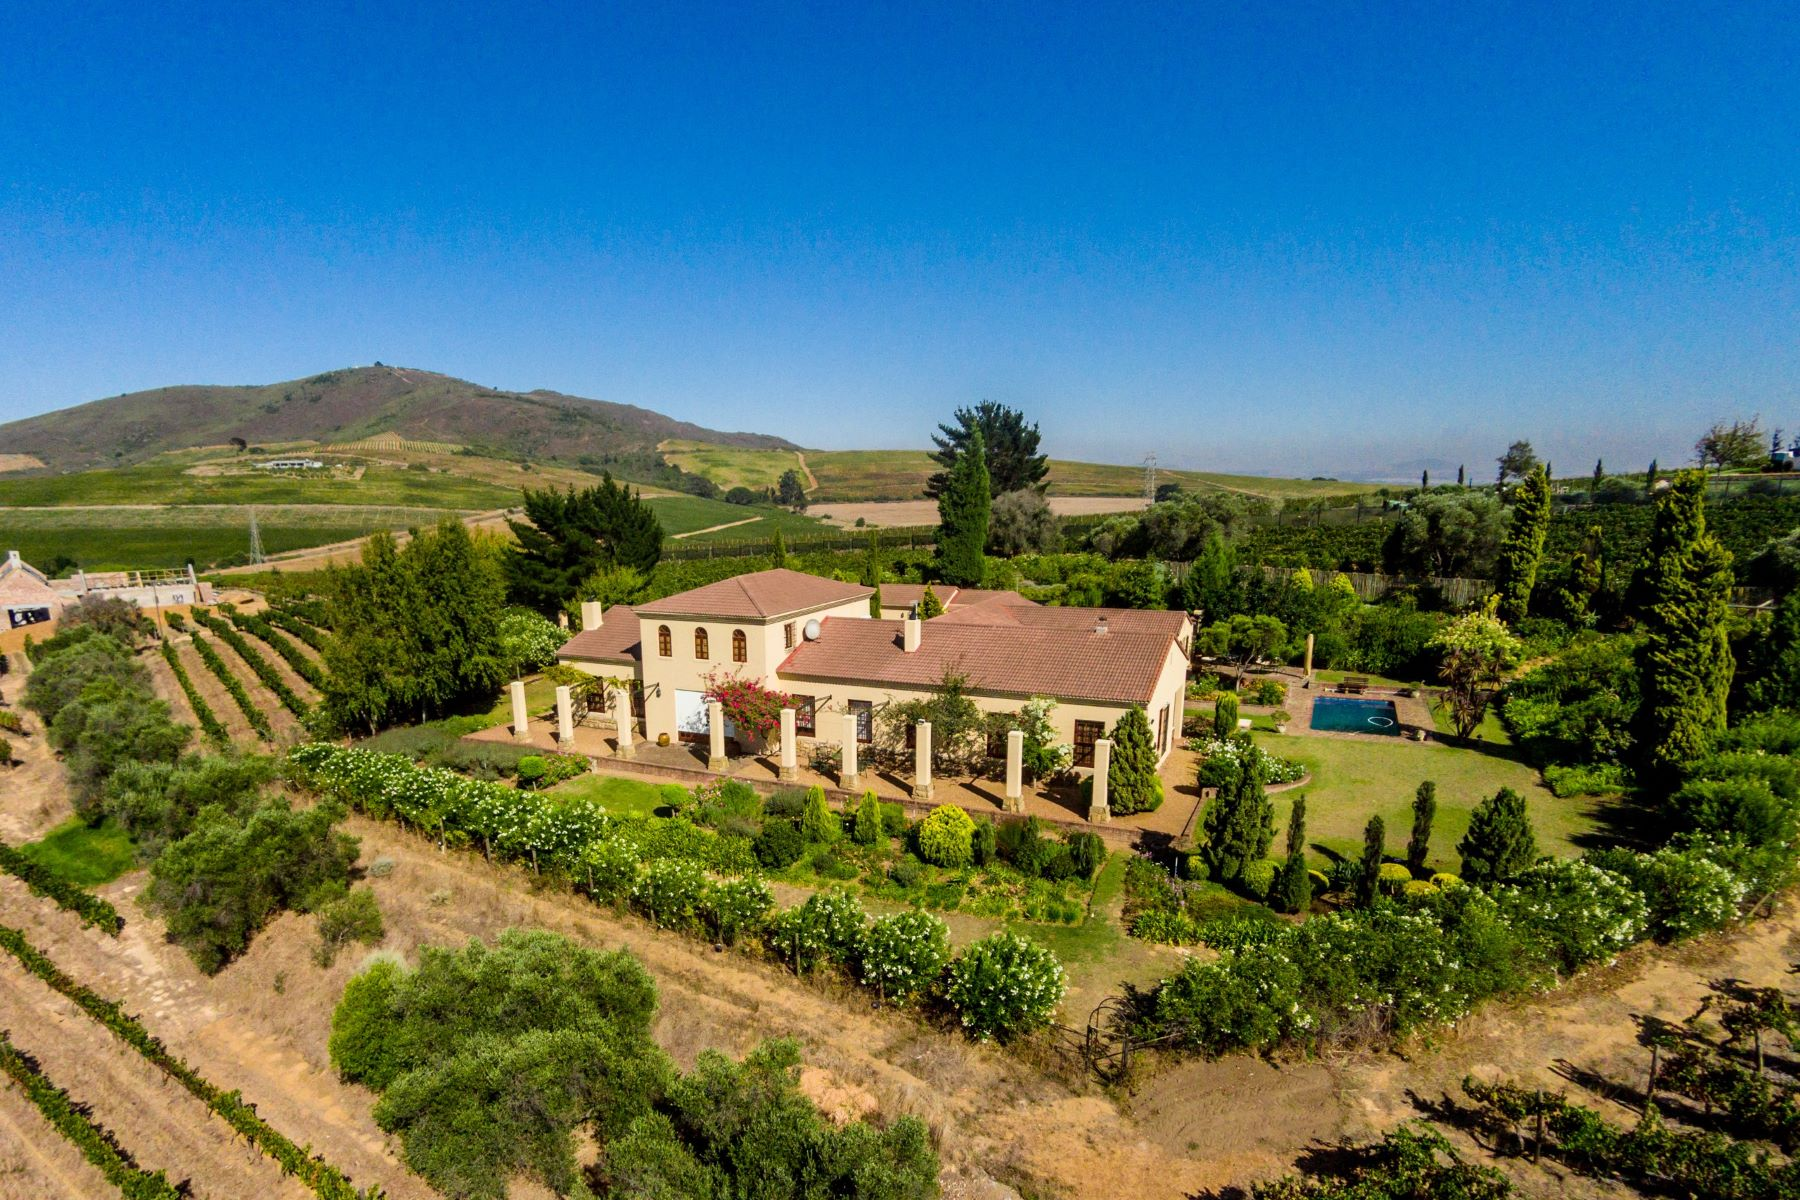 Ферма / ранчо / плантация для того Продажа на Unsurpassed views in sought after Devon Valley Stellenbosch, Западно-Капская Провинция, 7600 Южная Африка